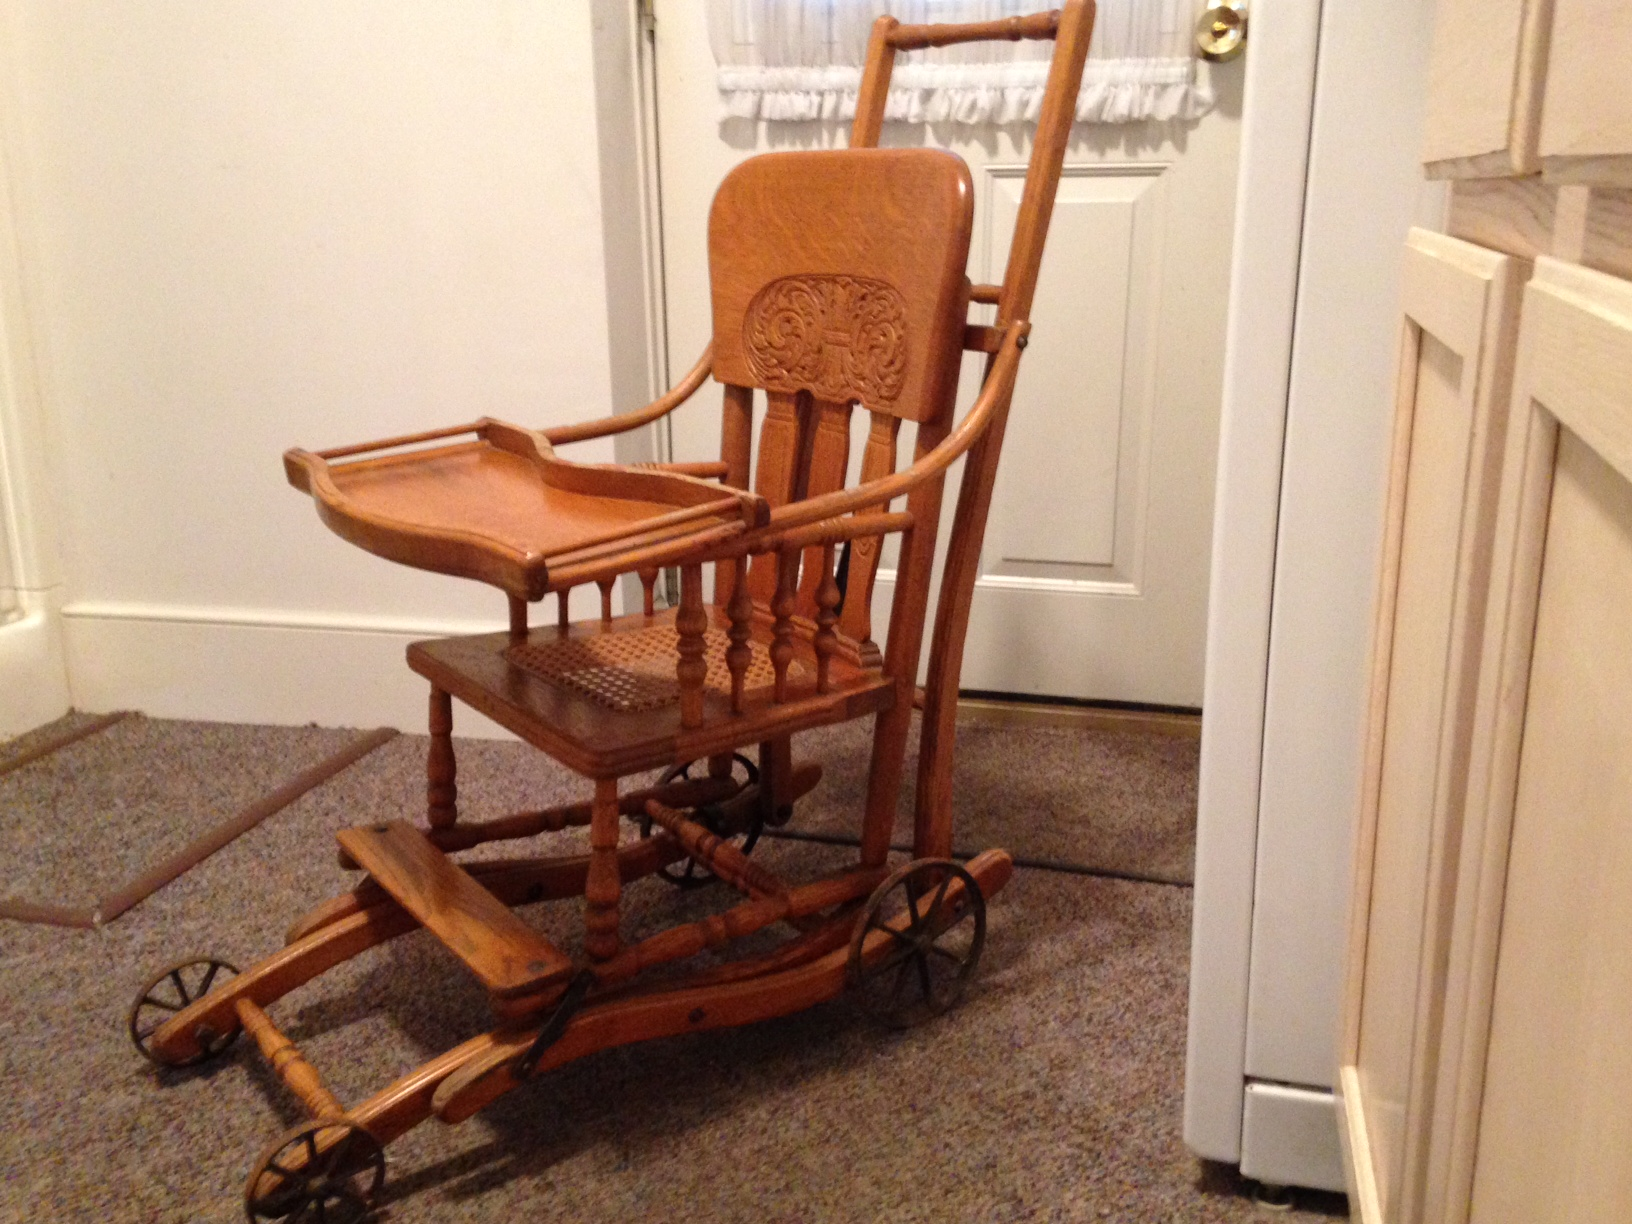 Antique high chair converts to rocking chair - Mother Was The First Daughter In The Family After Four Brothers So She Is The Fifth In Her Family To Use The Chair It Is Vintage However And Probably